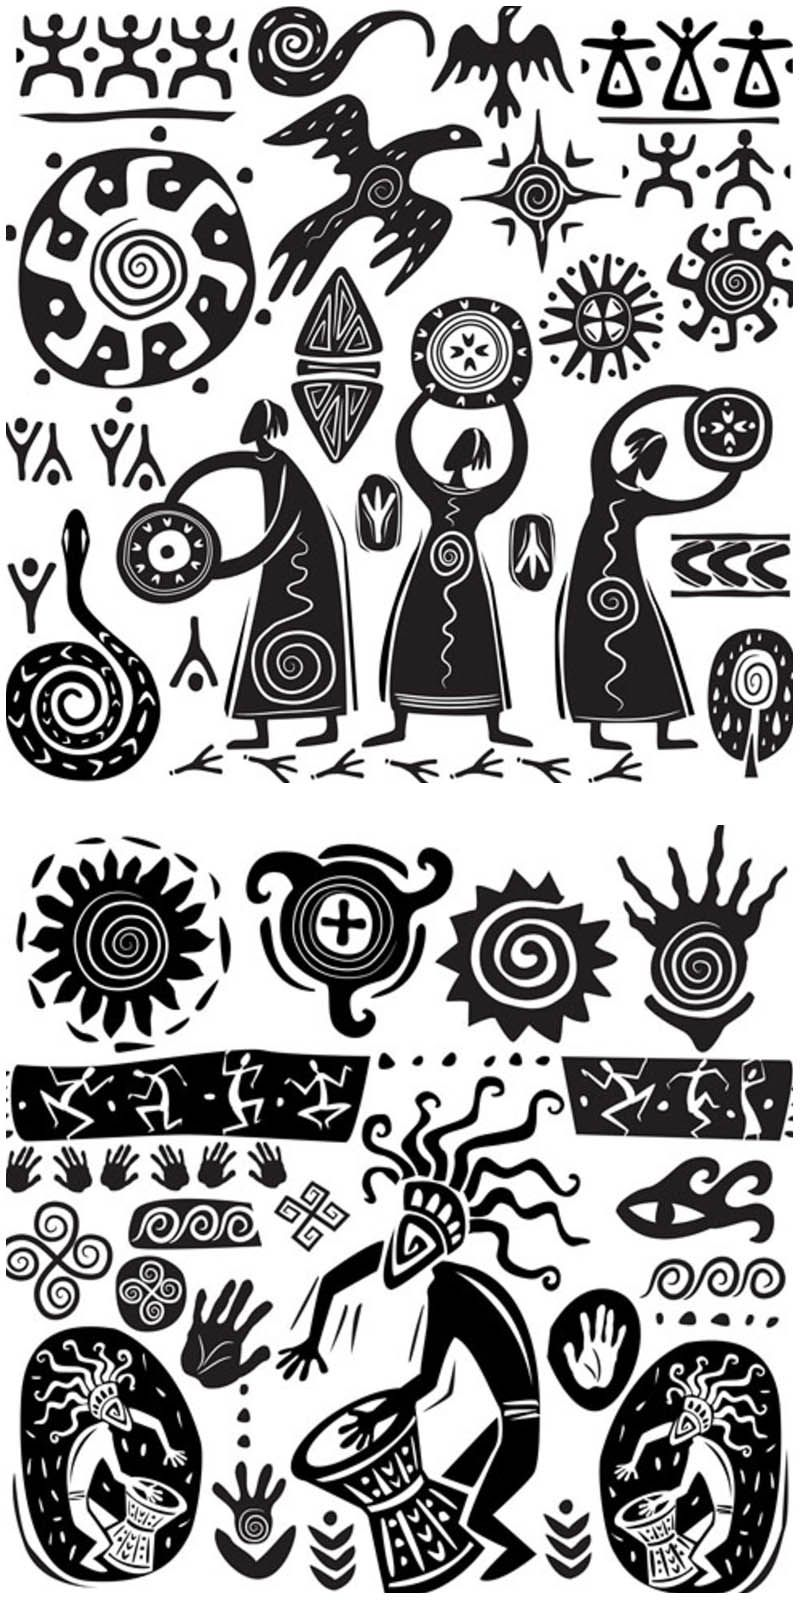 Primitive art elements vector #clipartfreebies